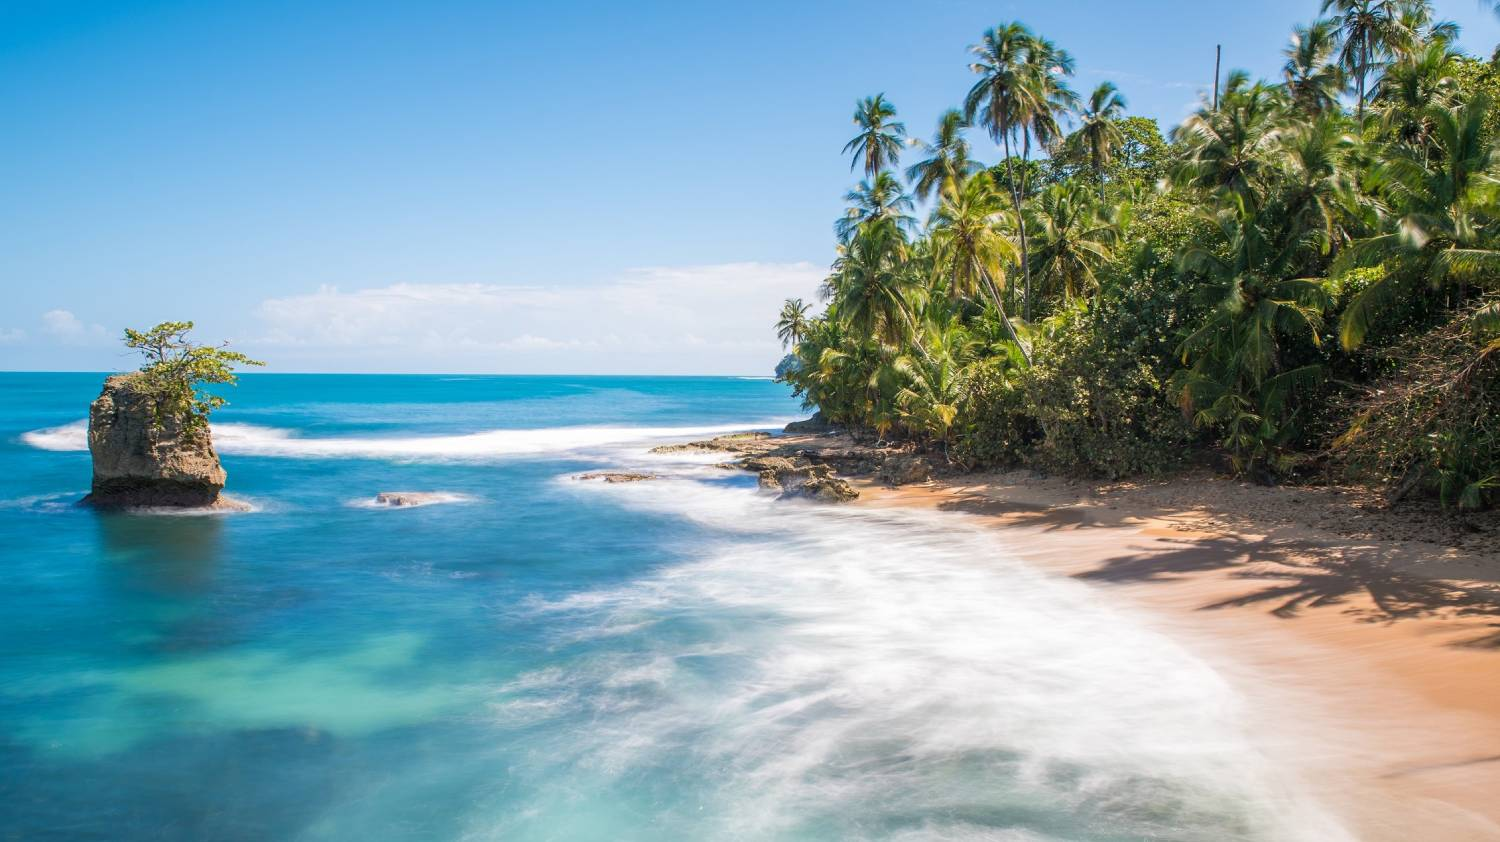 Costa Rica - The Best Countries To Visit In Central America